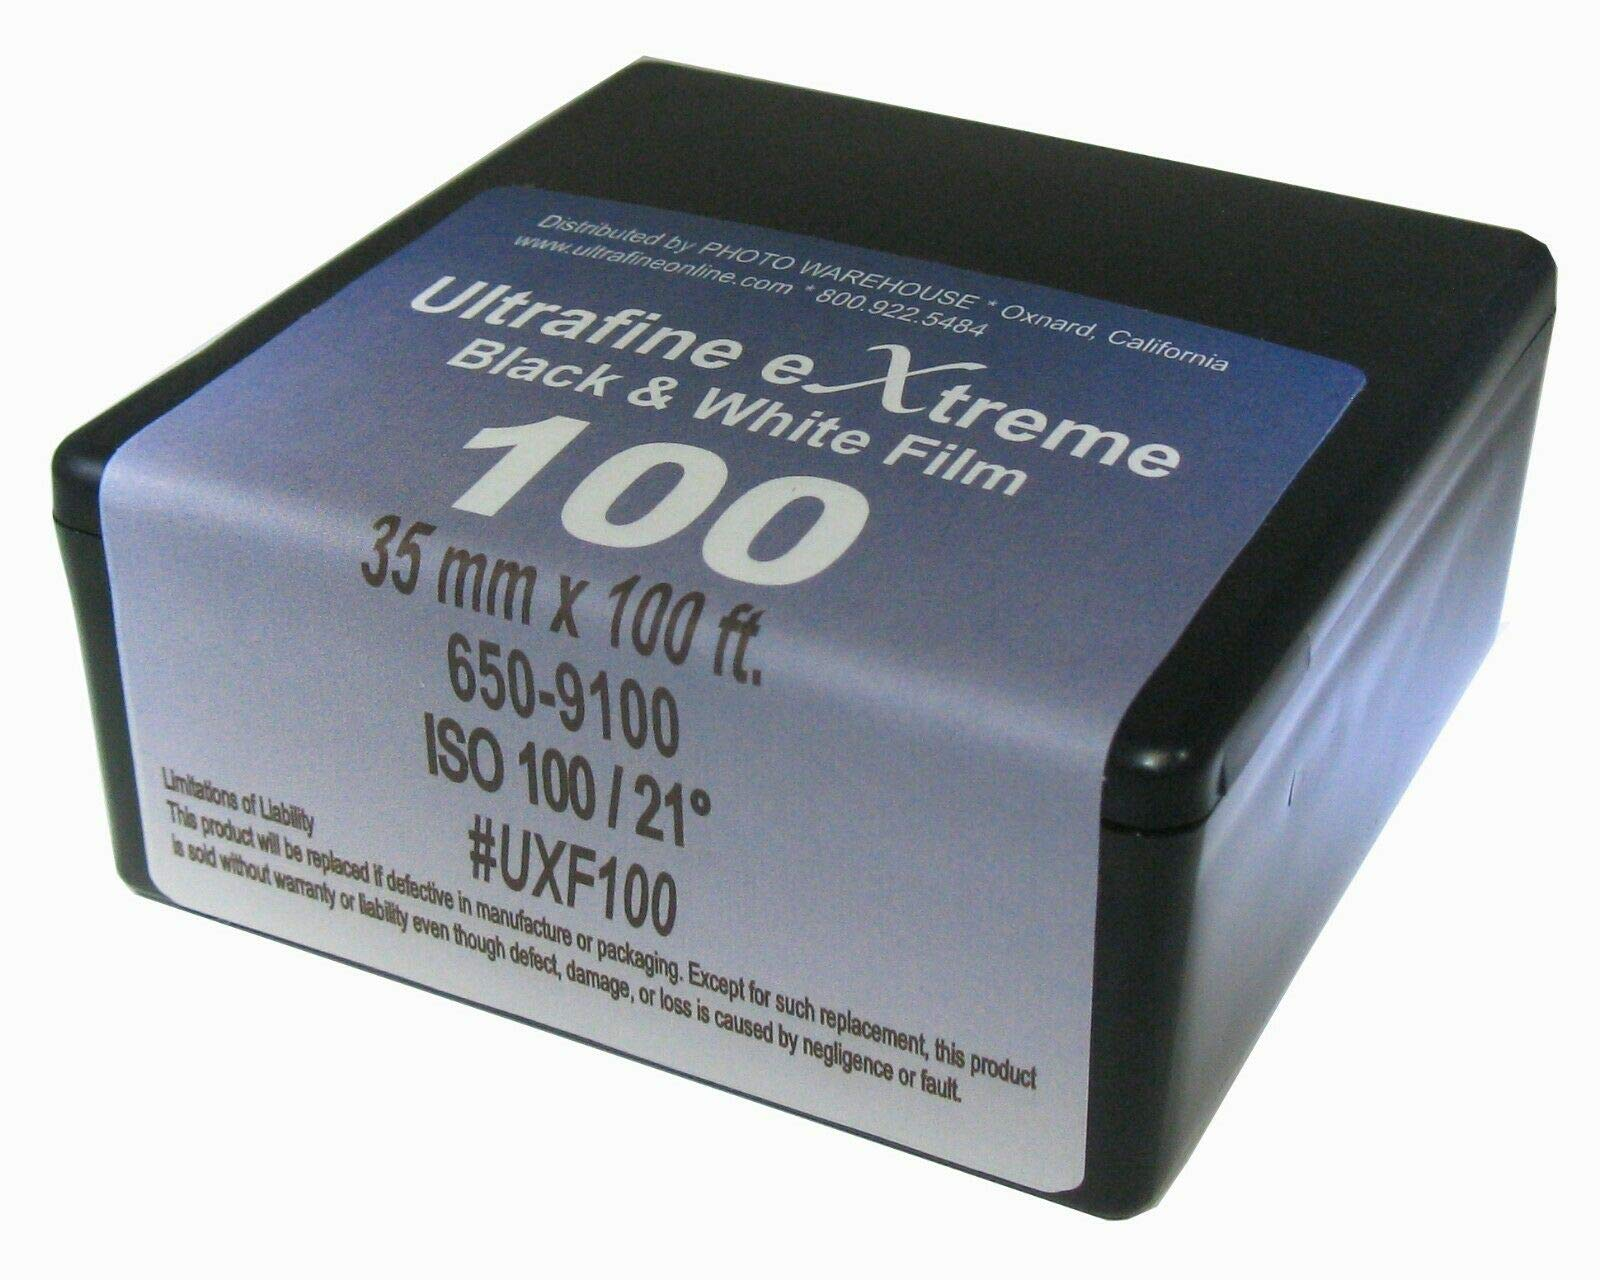 Ultrafine Xtreme Black-and-White 35mm x 100 foot Film ISO 100 Roll